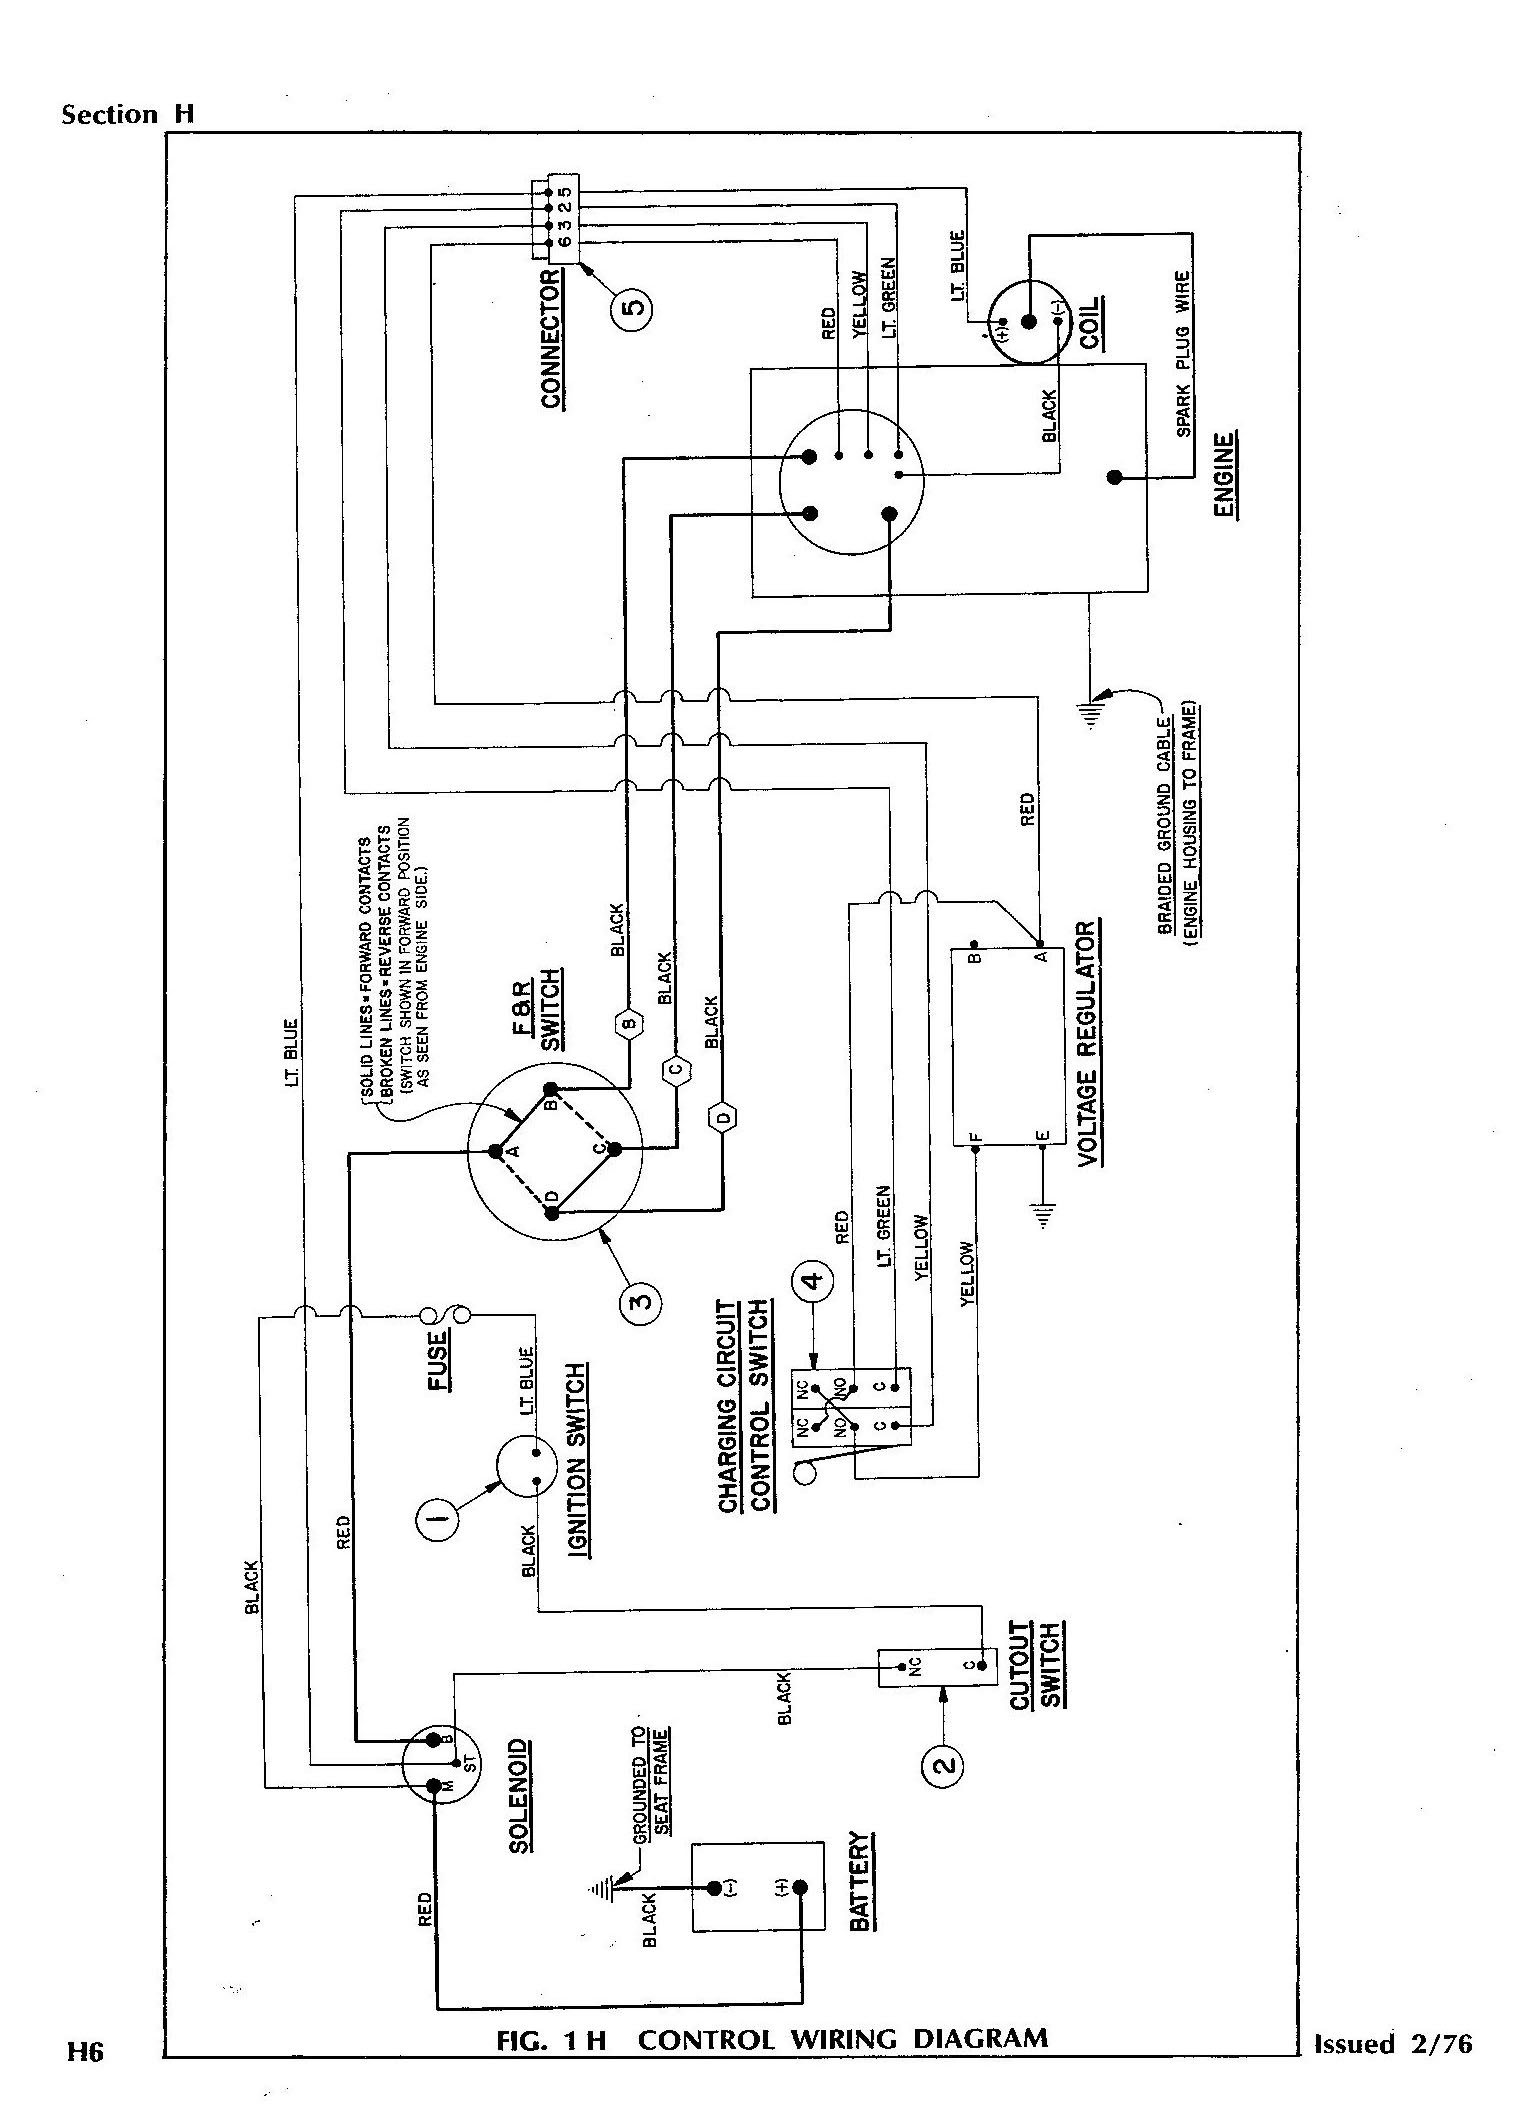 hight resolution of 2000 ez go wiring diagram wiring diagram schemes ez go solenoid wiring 2001 ez go txt